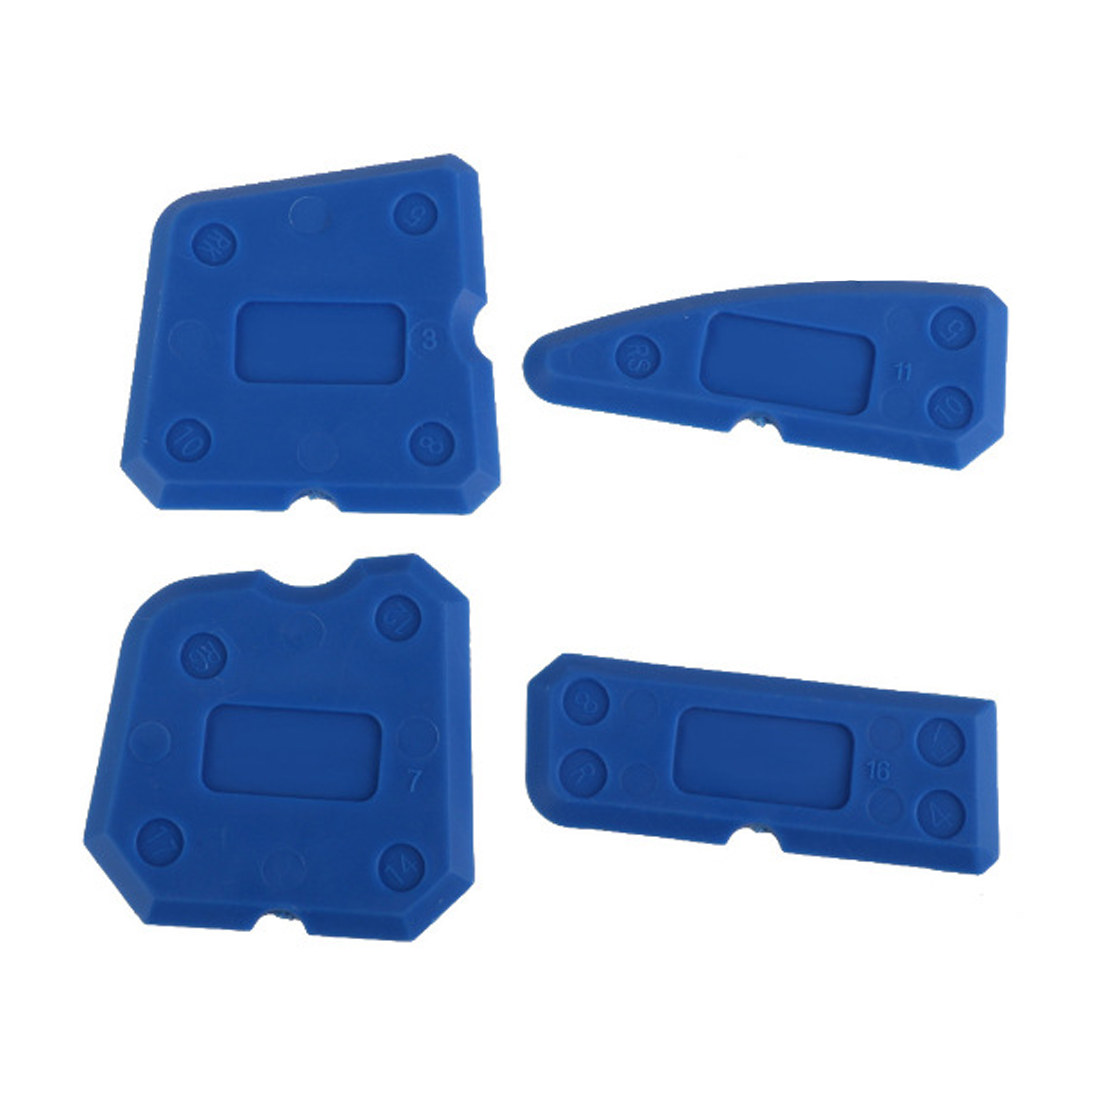 Купить с кэшбэком Caulking Tool Kit Joint Sealant Silicone Edge Grout Remover Scraper 4pcs Blue  Hand Tools Combination with Case PP + ABS